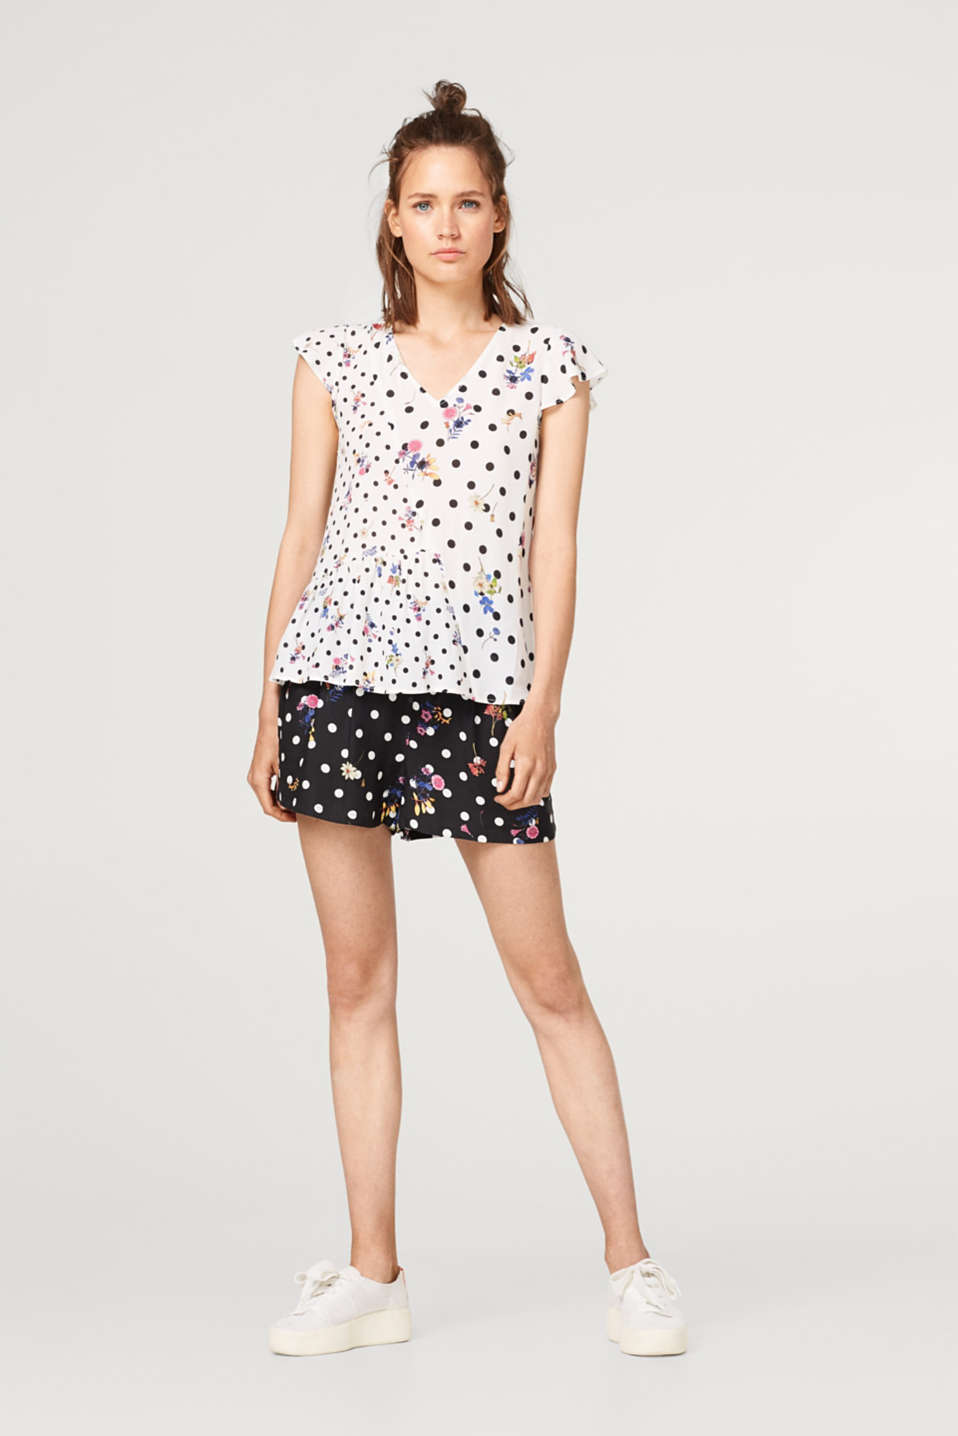 Blouse top with flounces in a mix of patterns